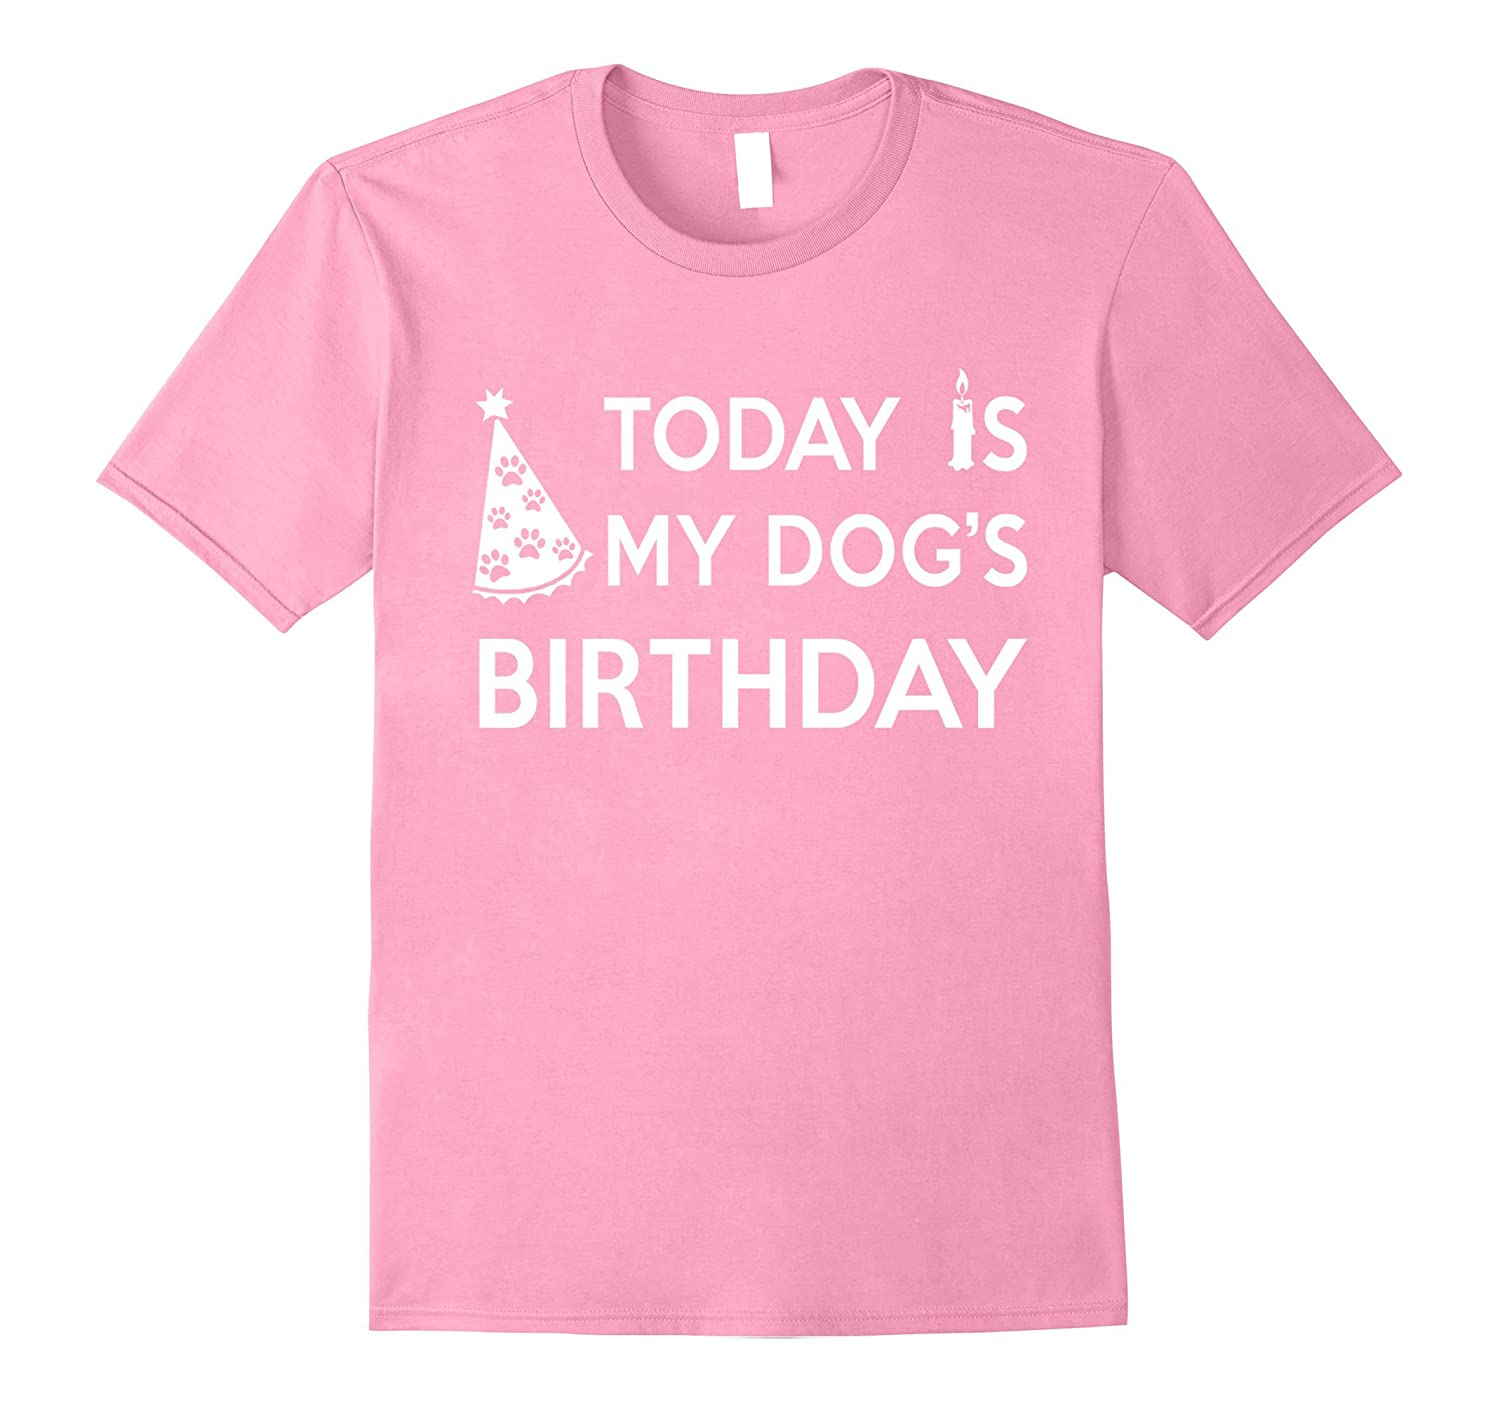 c93322df85c4 Today Is My Dog's Birthday Cute T-Shirt For Dog Pet Lover-ANZ ...